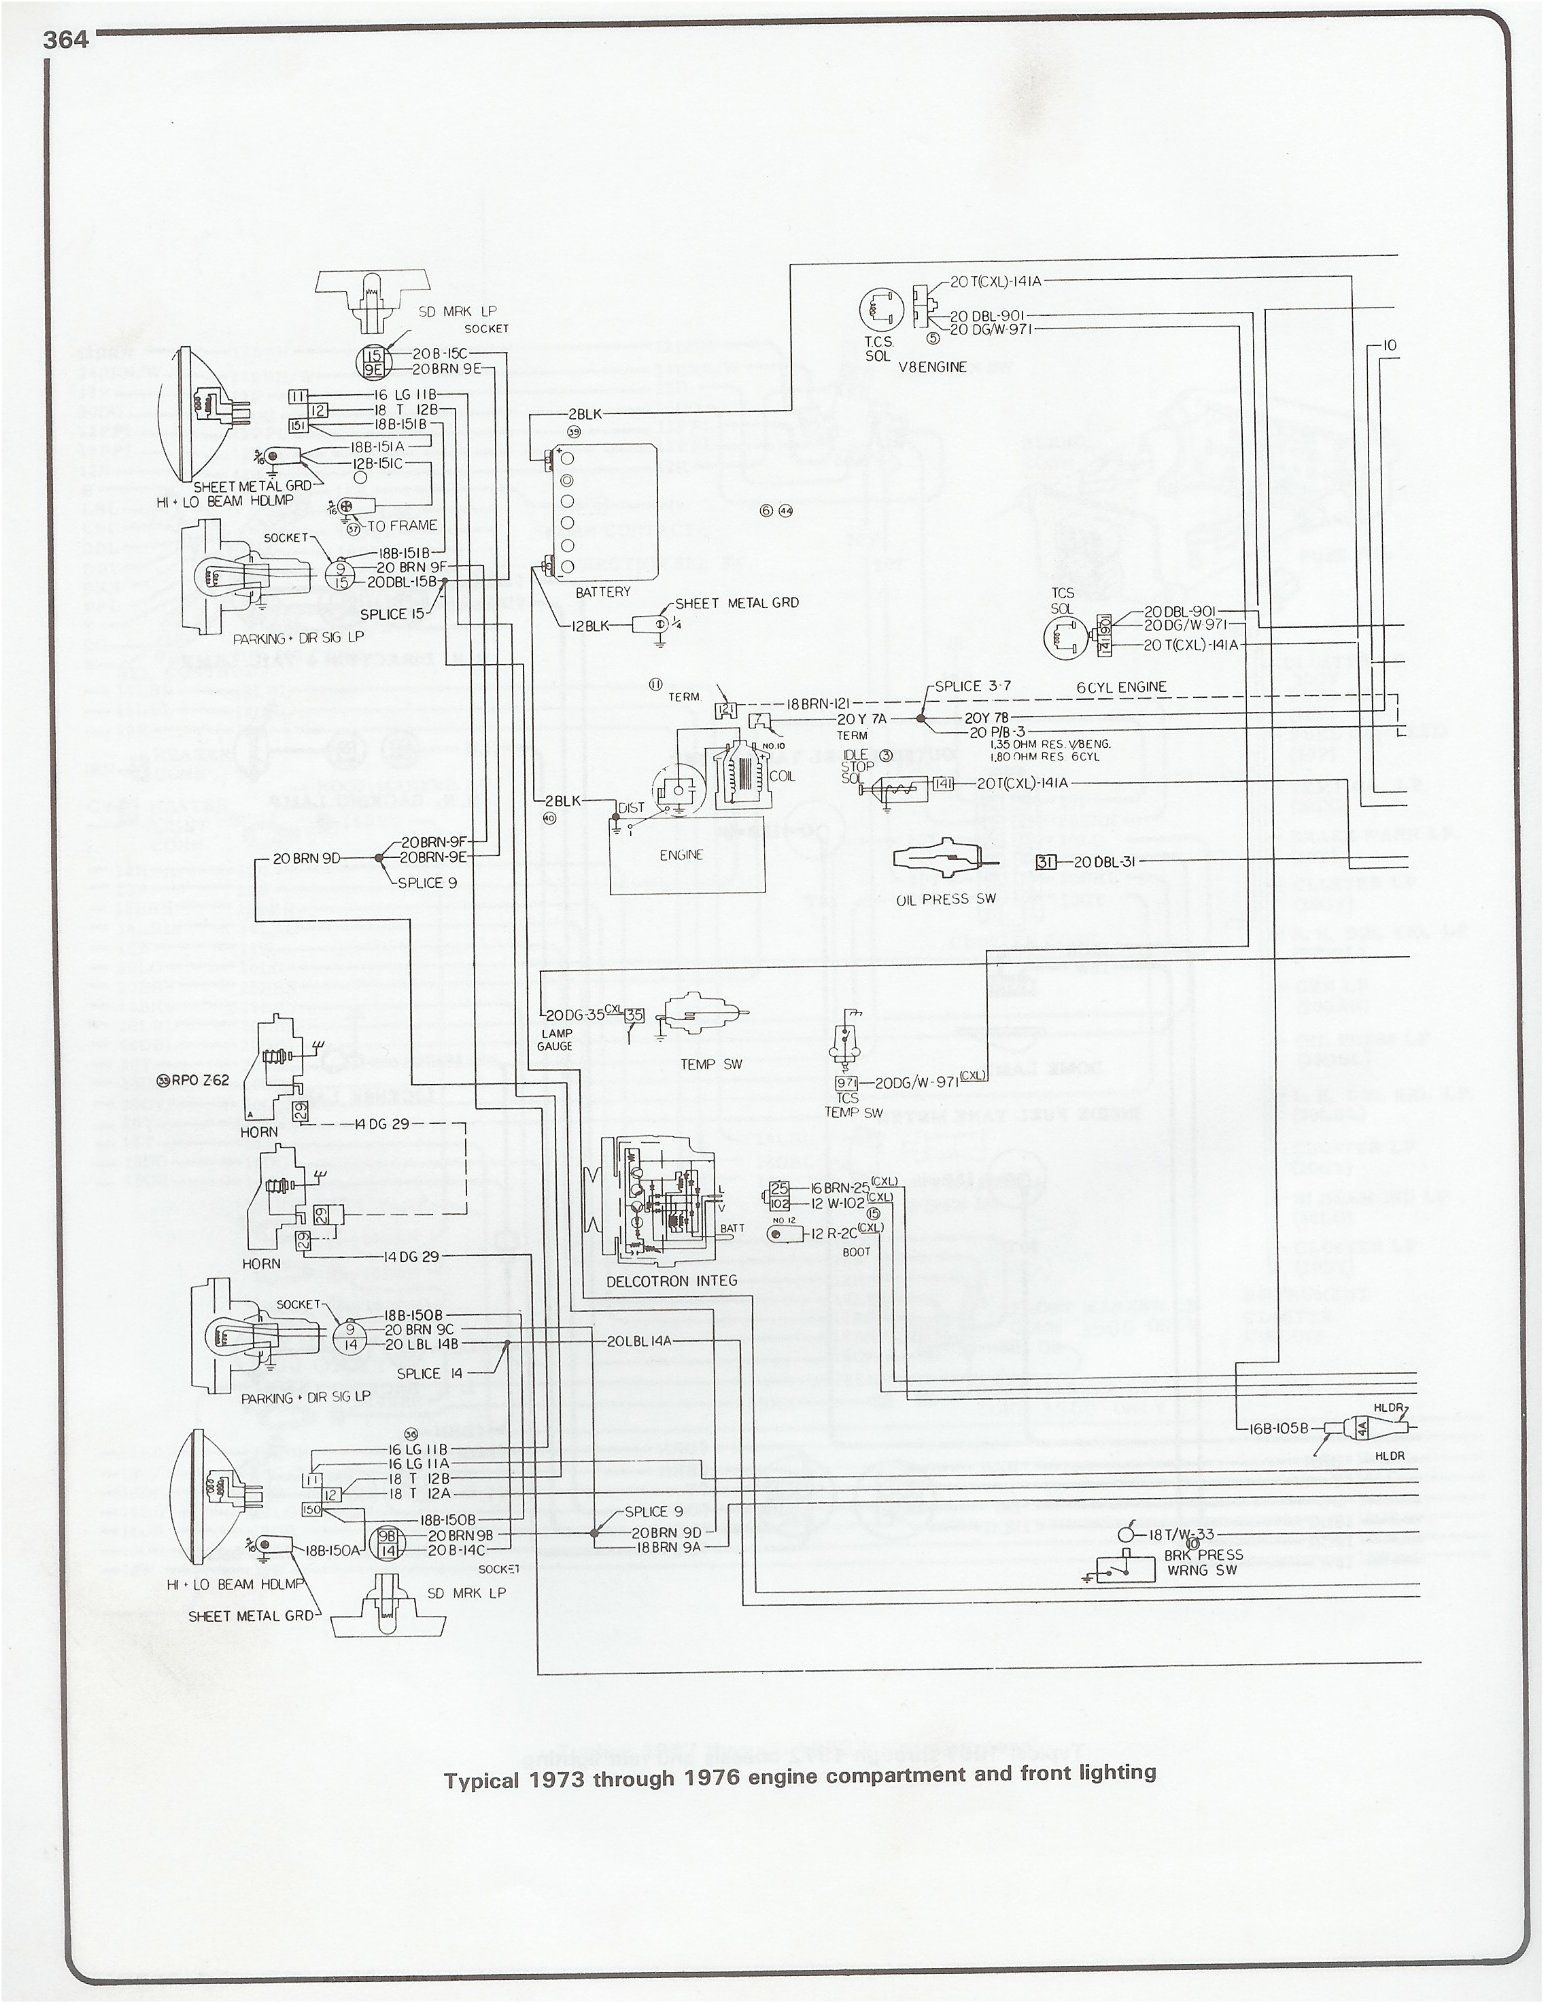 1980 toyota pickup headlight wiring diagram wiring diagram 1973 1976 chevy pickup chevy wiring diagram  wiring diagram 1973 1976 chevy pickup